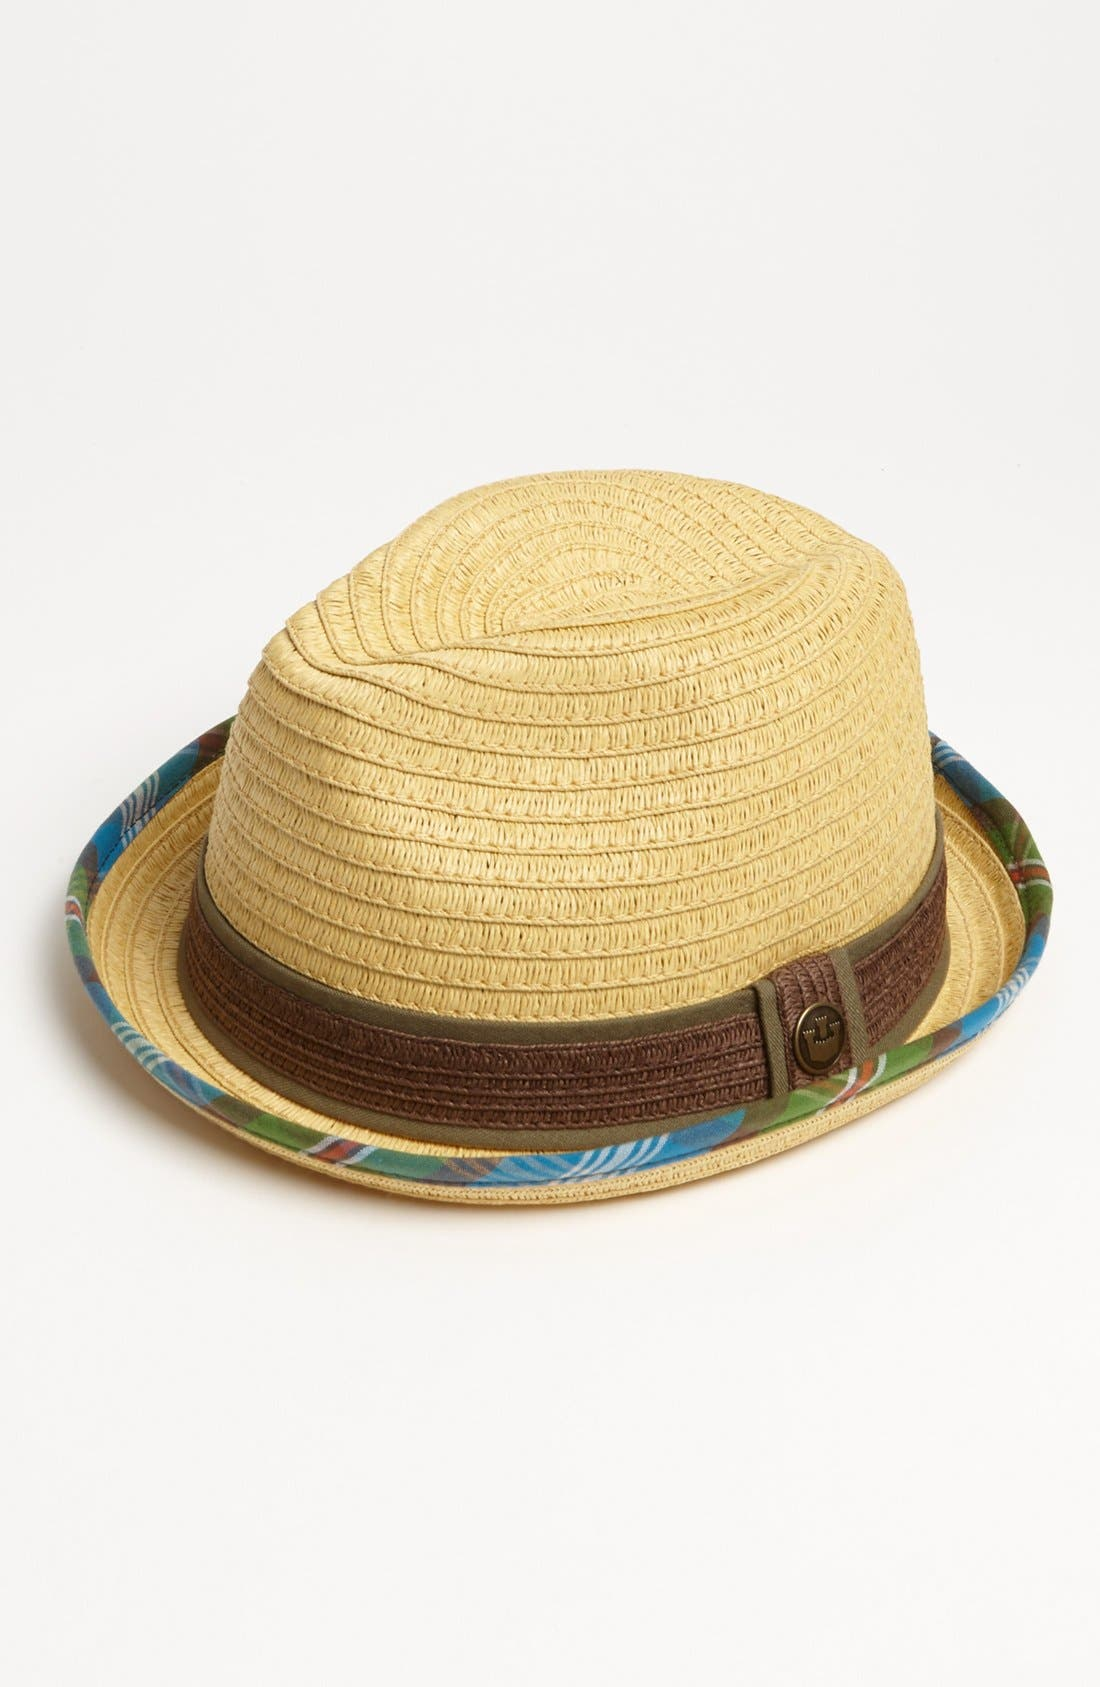 Alternate Image 1 Selected - Goorin Brothers 'Mahi Mahi' Straw Trilby